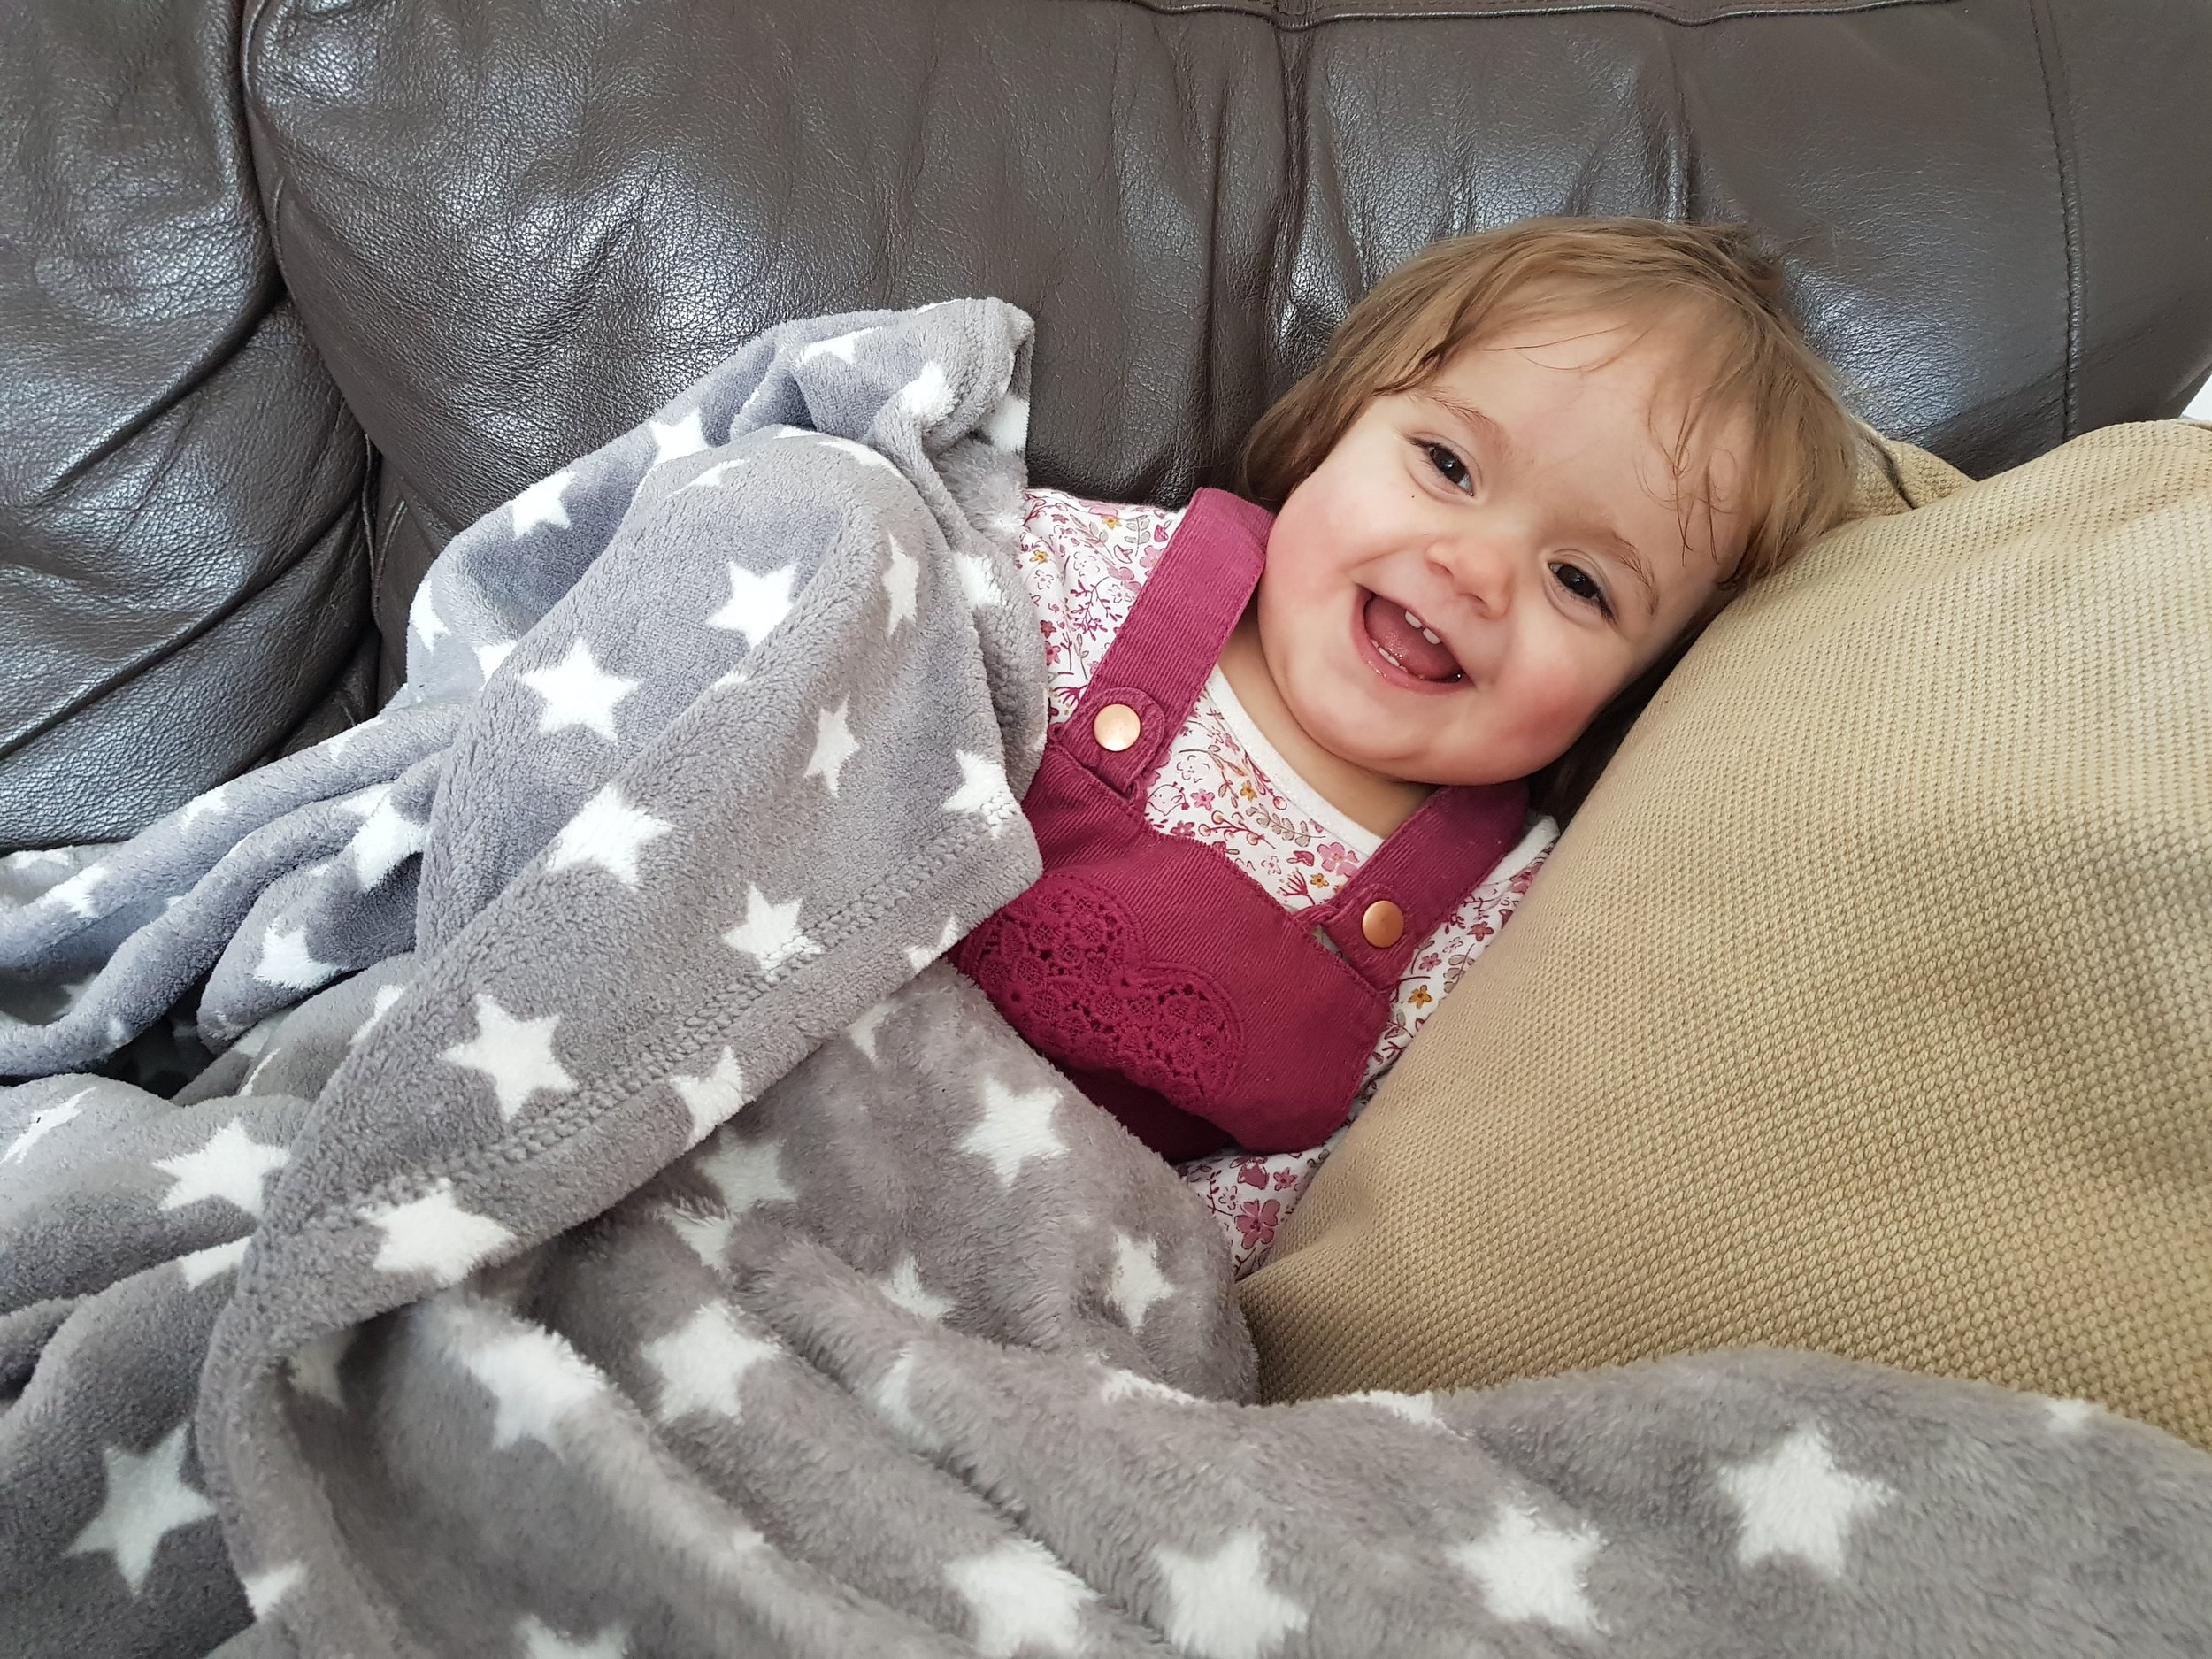 Cheeky baby snuggled up under an awesome blanket from Room to Grow